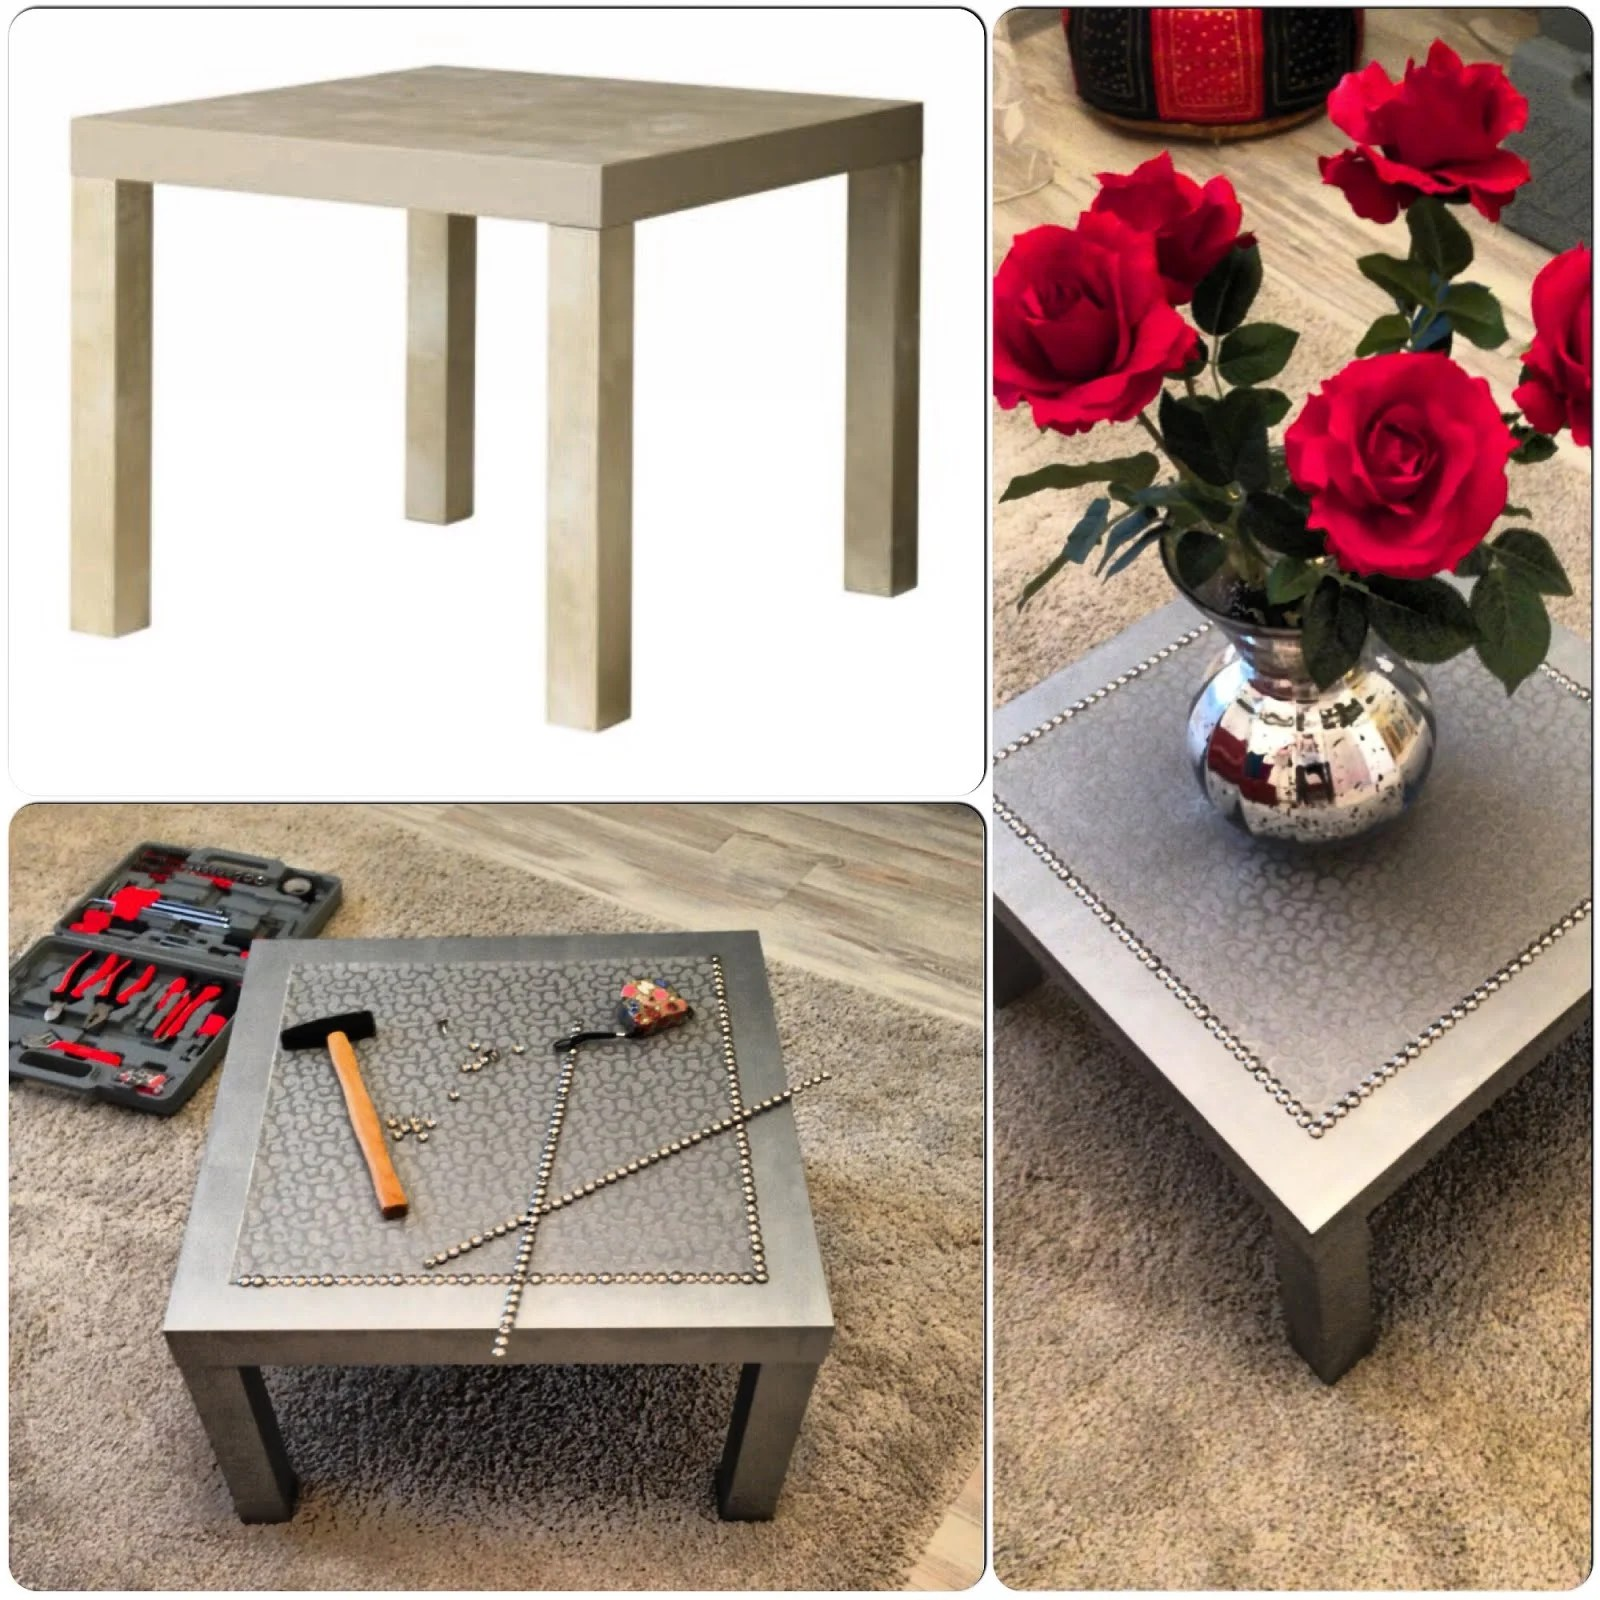 Ikea Lack Coffee Table Legs: Silver Coffee LACK Table